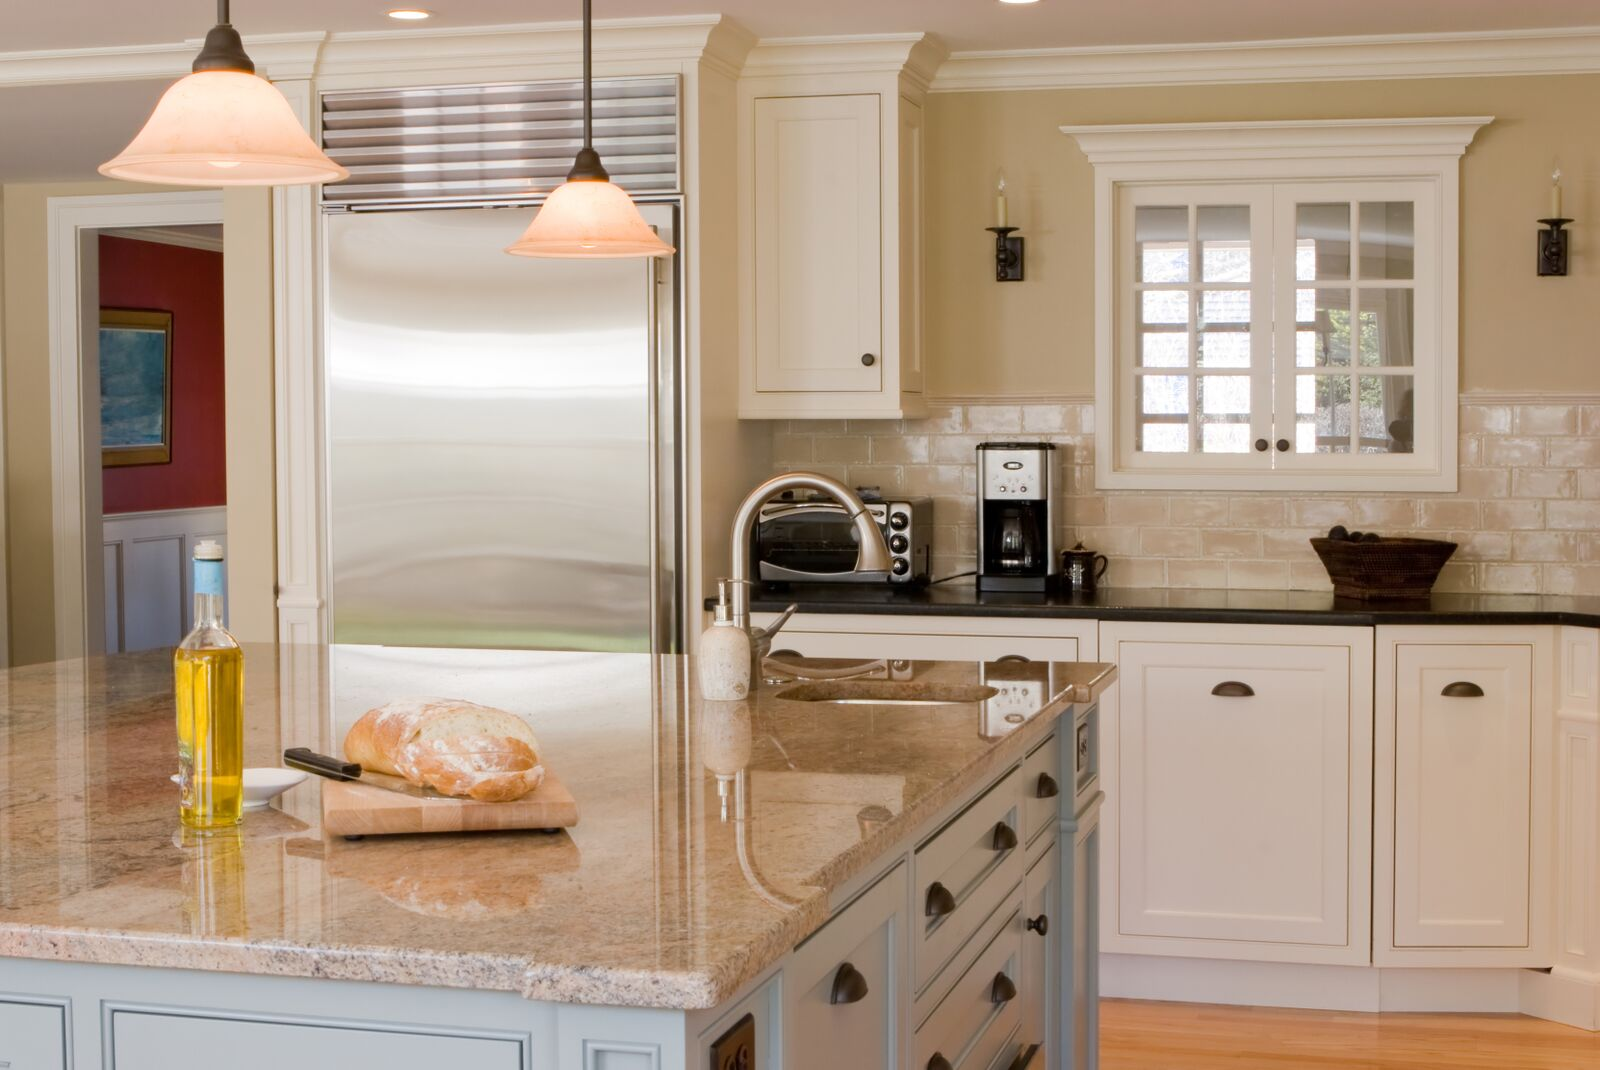 Granite Countertops Starting at $24.99 Per SF Impact Countertops